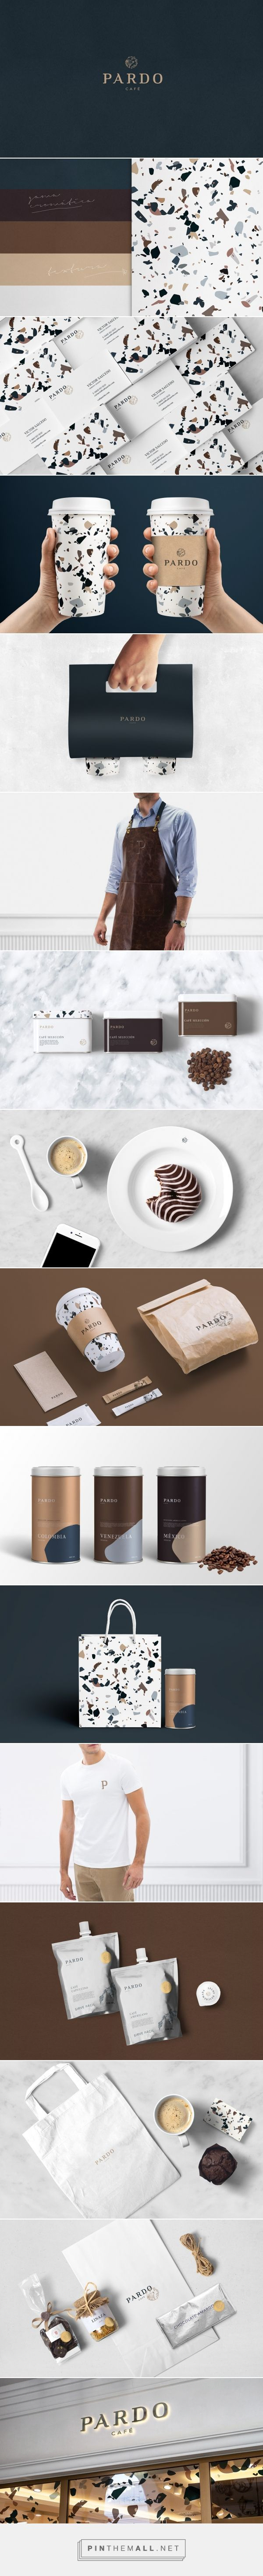 Pardo Cafe Branding and Packaging by Slavador Munca | Fivestar Branding Agency – Design and Branding Agency & Curated Inspiration Gallery